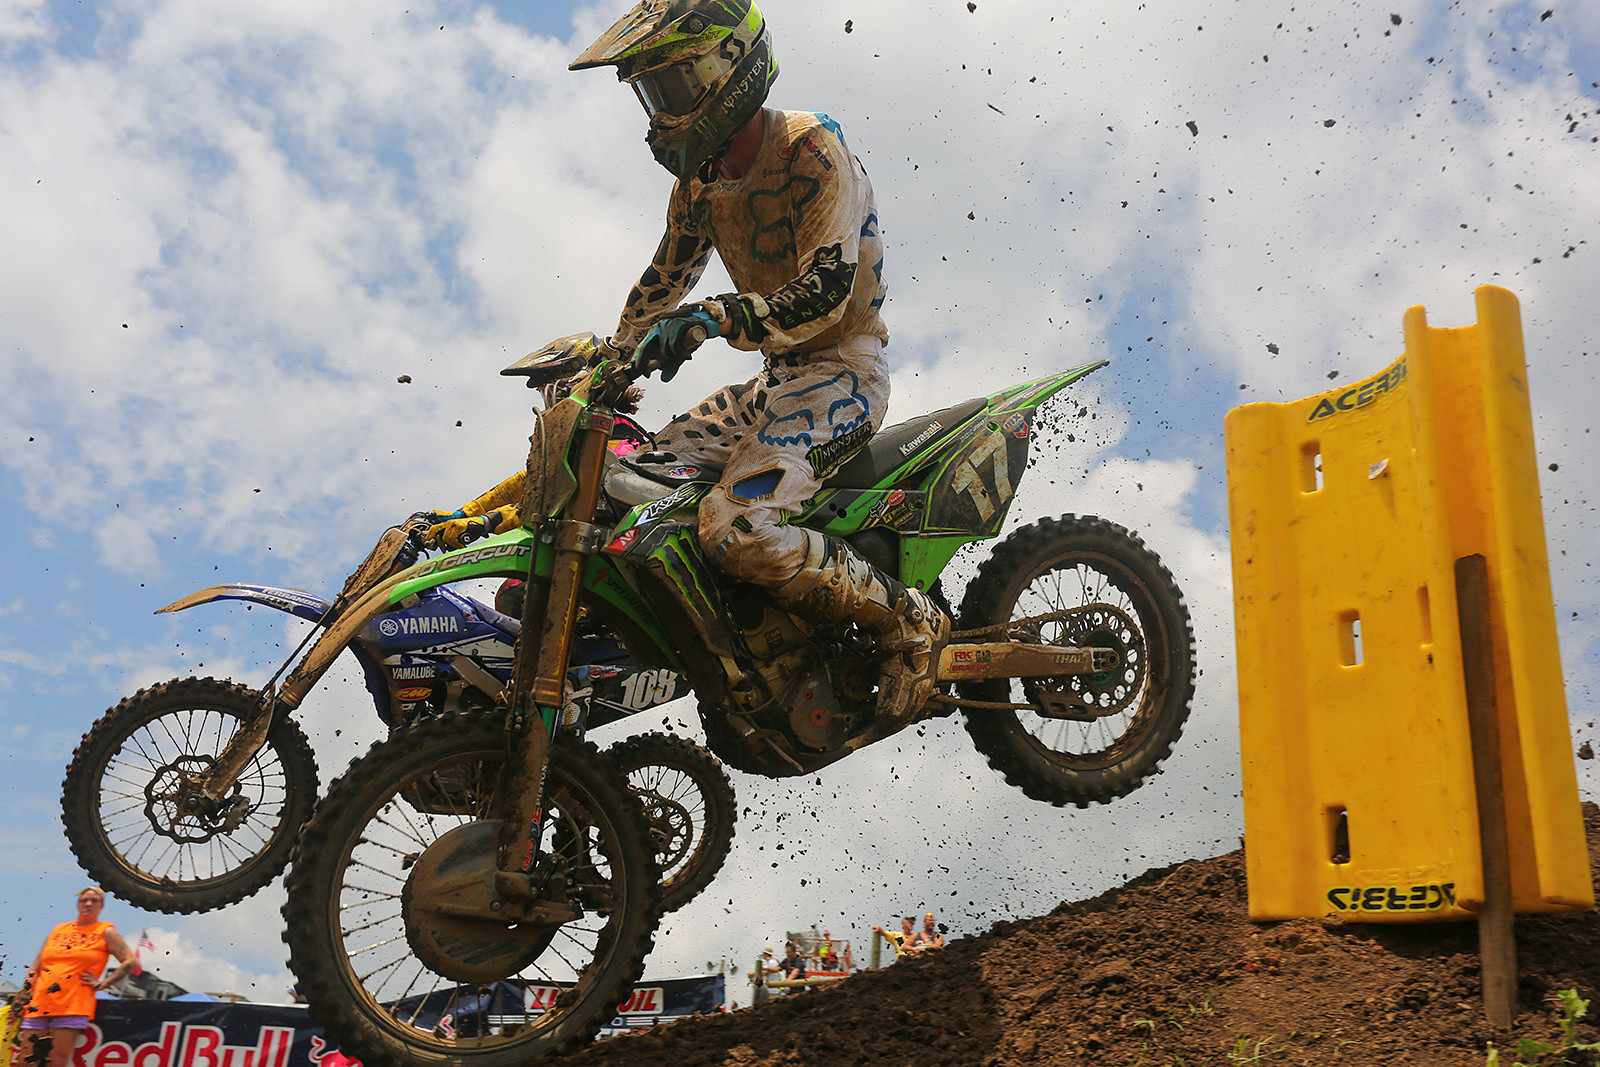 Dylan Ferrandis and Joey Savatgy are both moto winners this season, but both were on the ground (along with another winner, Jeremy Martin) in the first turn. Dylan and Joey finished ninth and 11th, respectively, in the first moto.